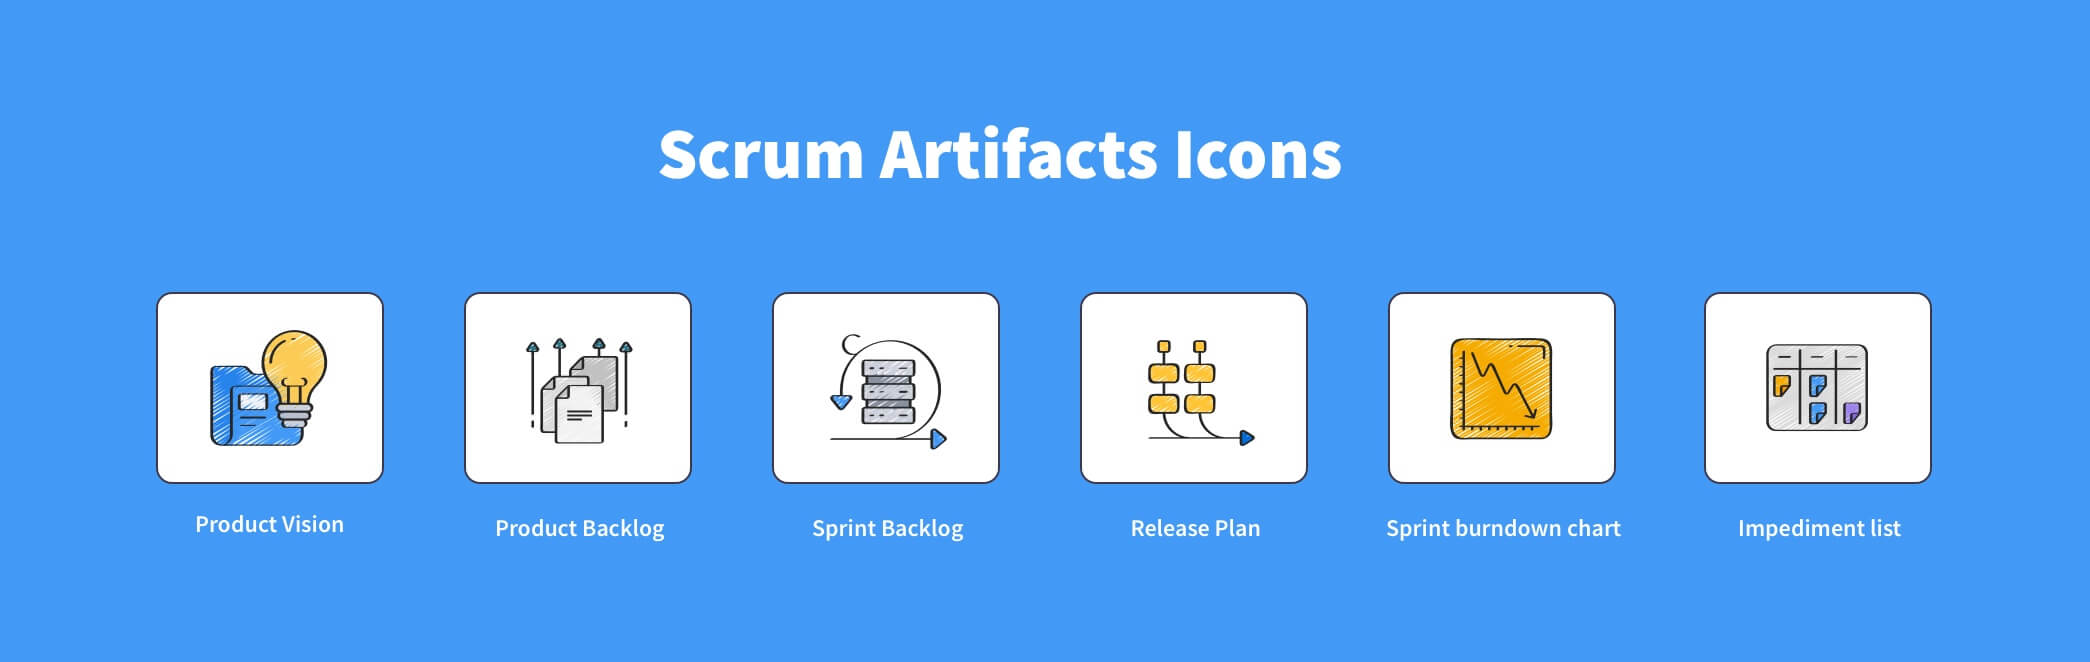 What are Scrum artifacts?